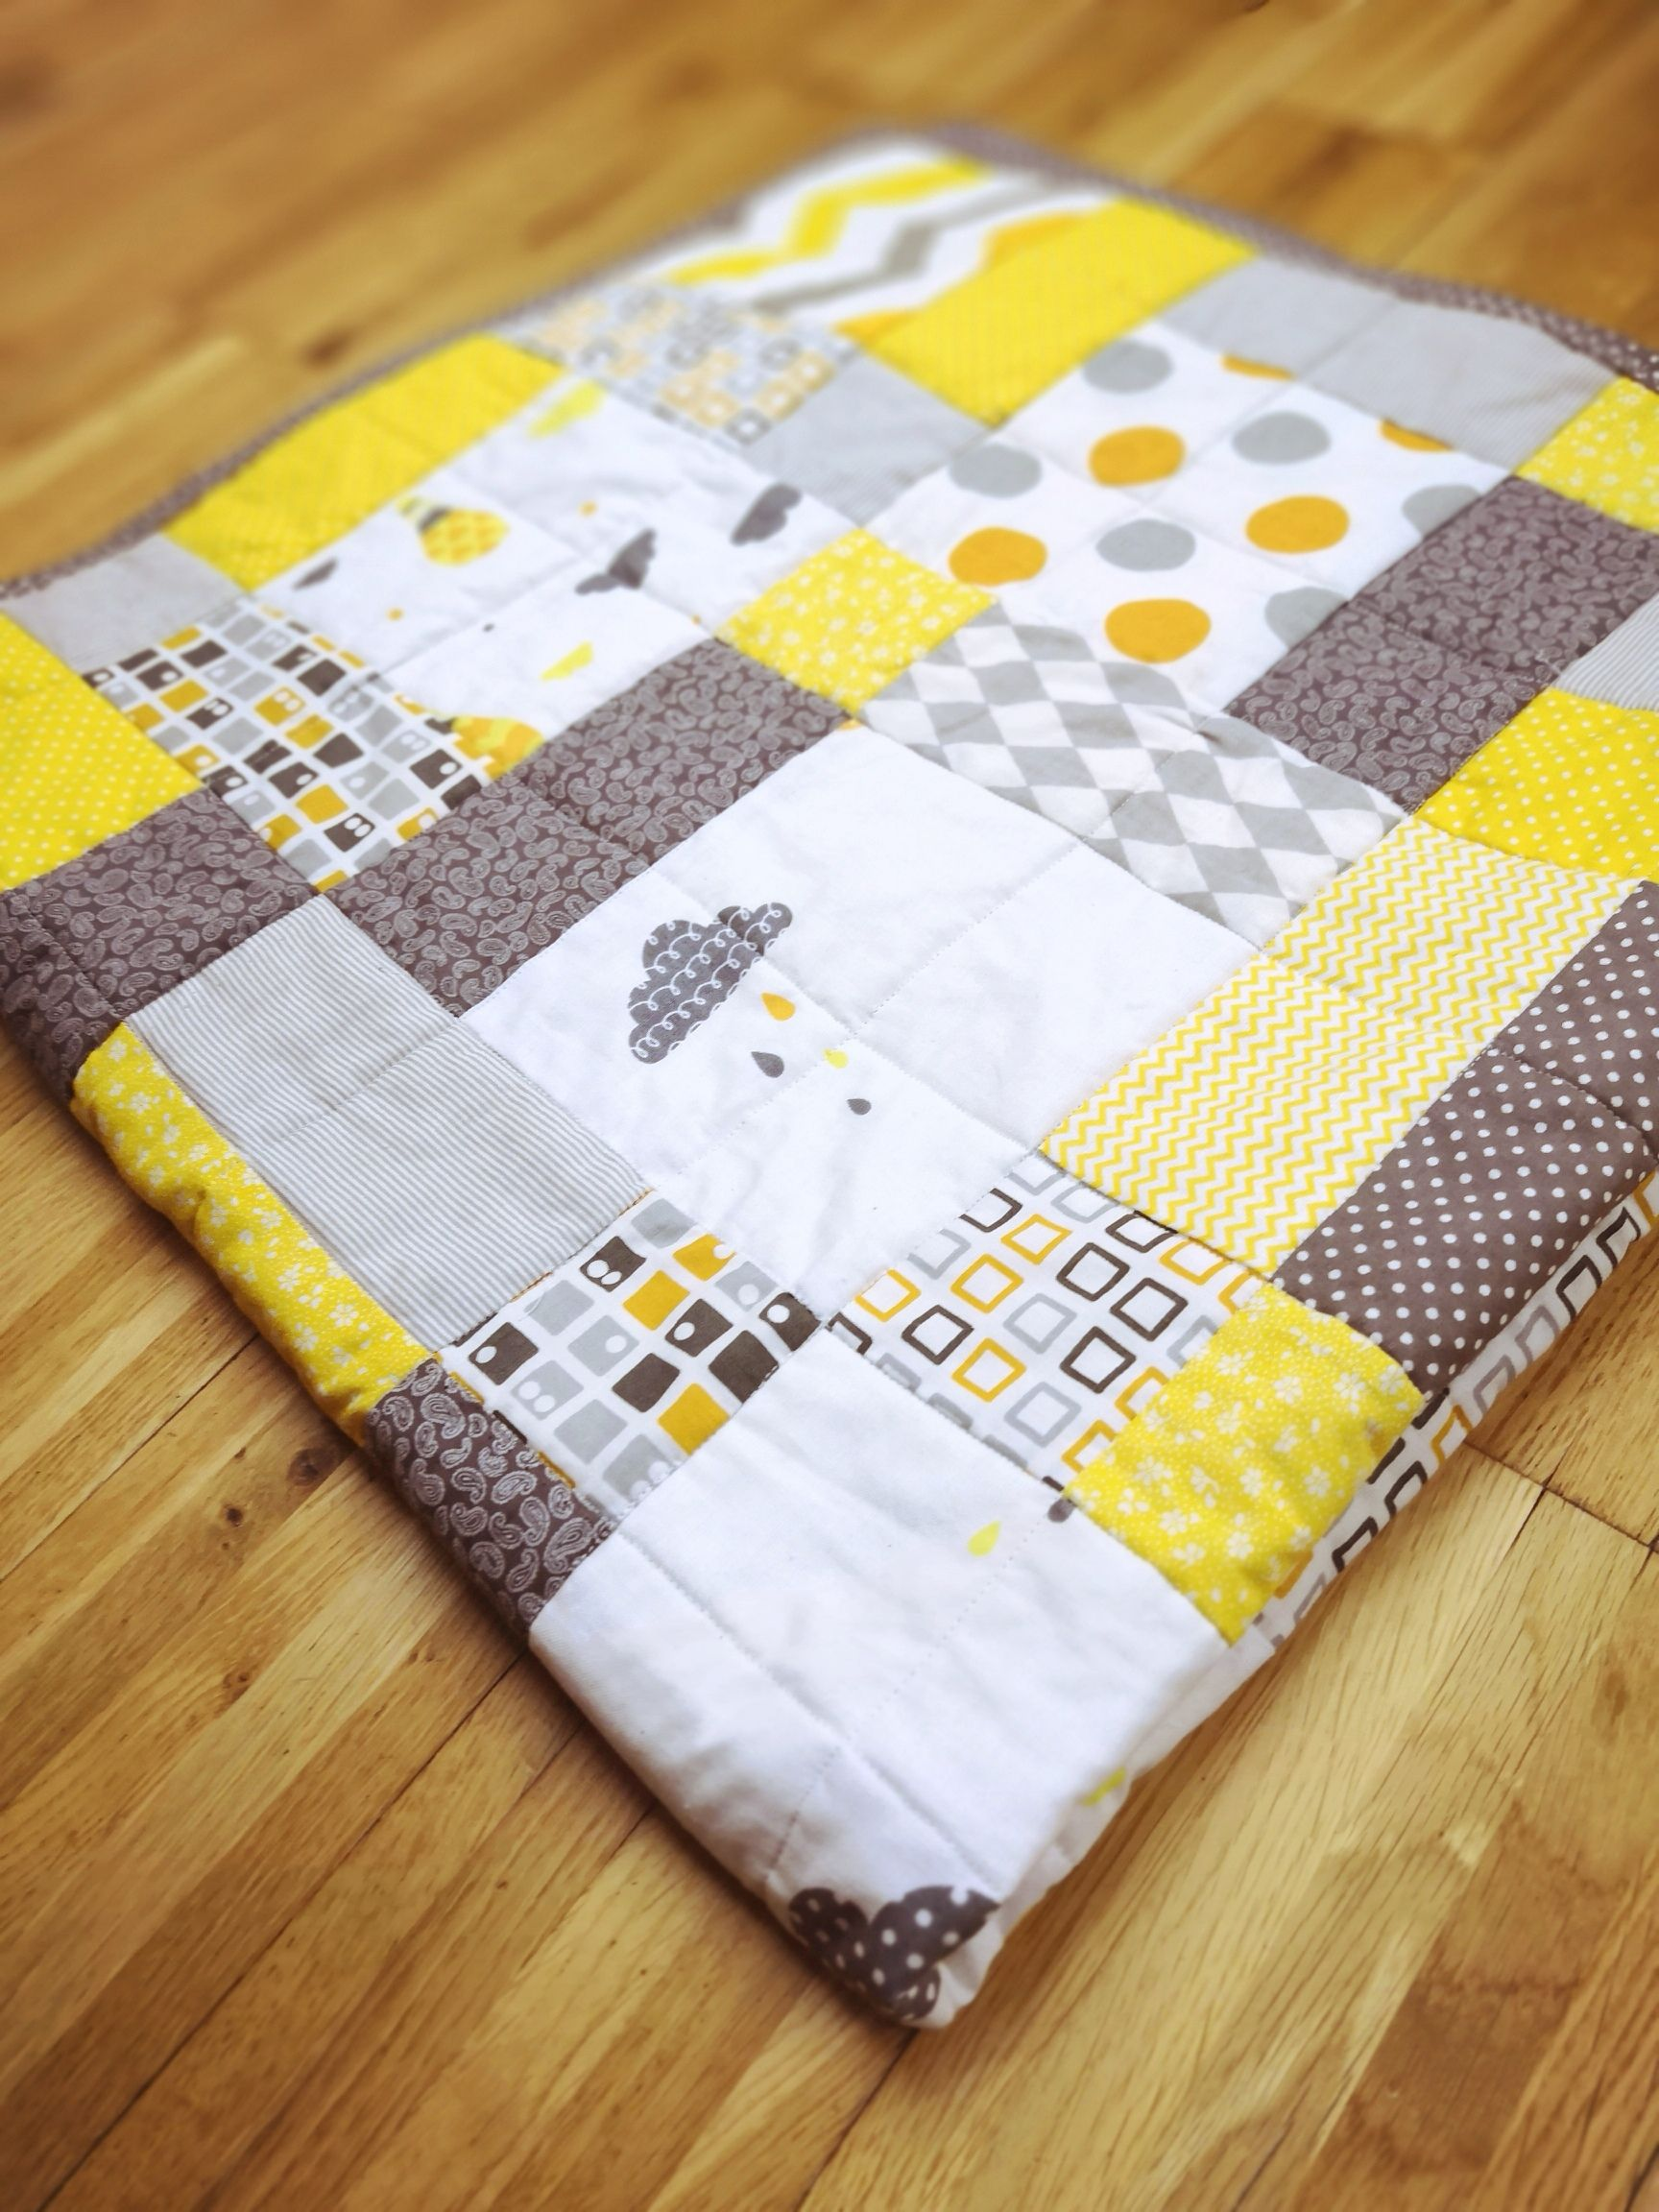 e5defd2abcd6c Modern Baby Patchwork Quilt, READY TO SHIP unisex quilt, sized 41x41 ...